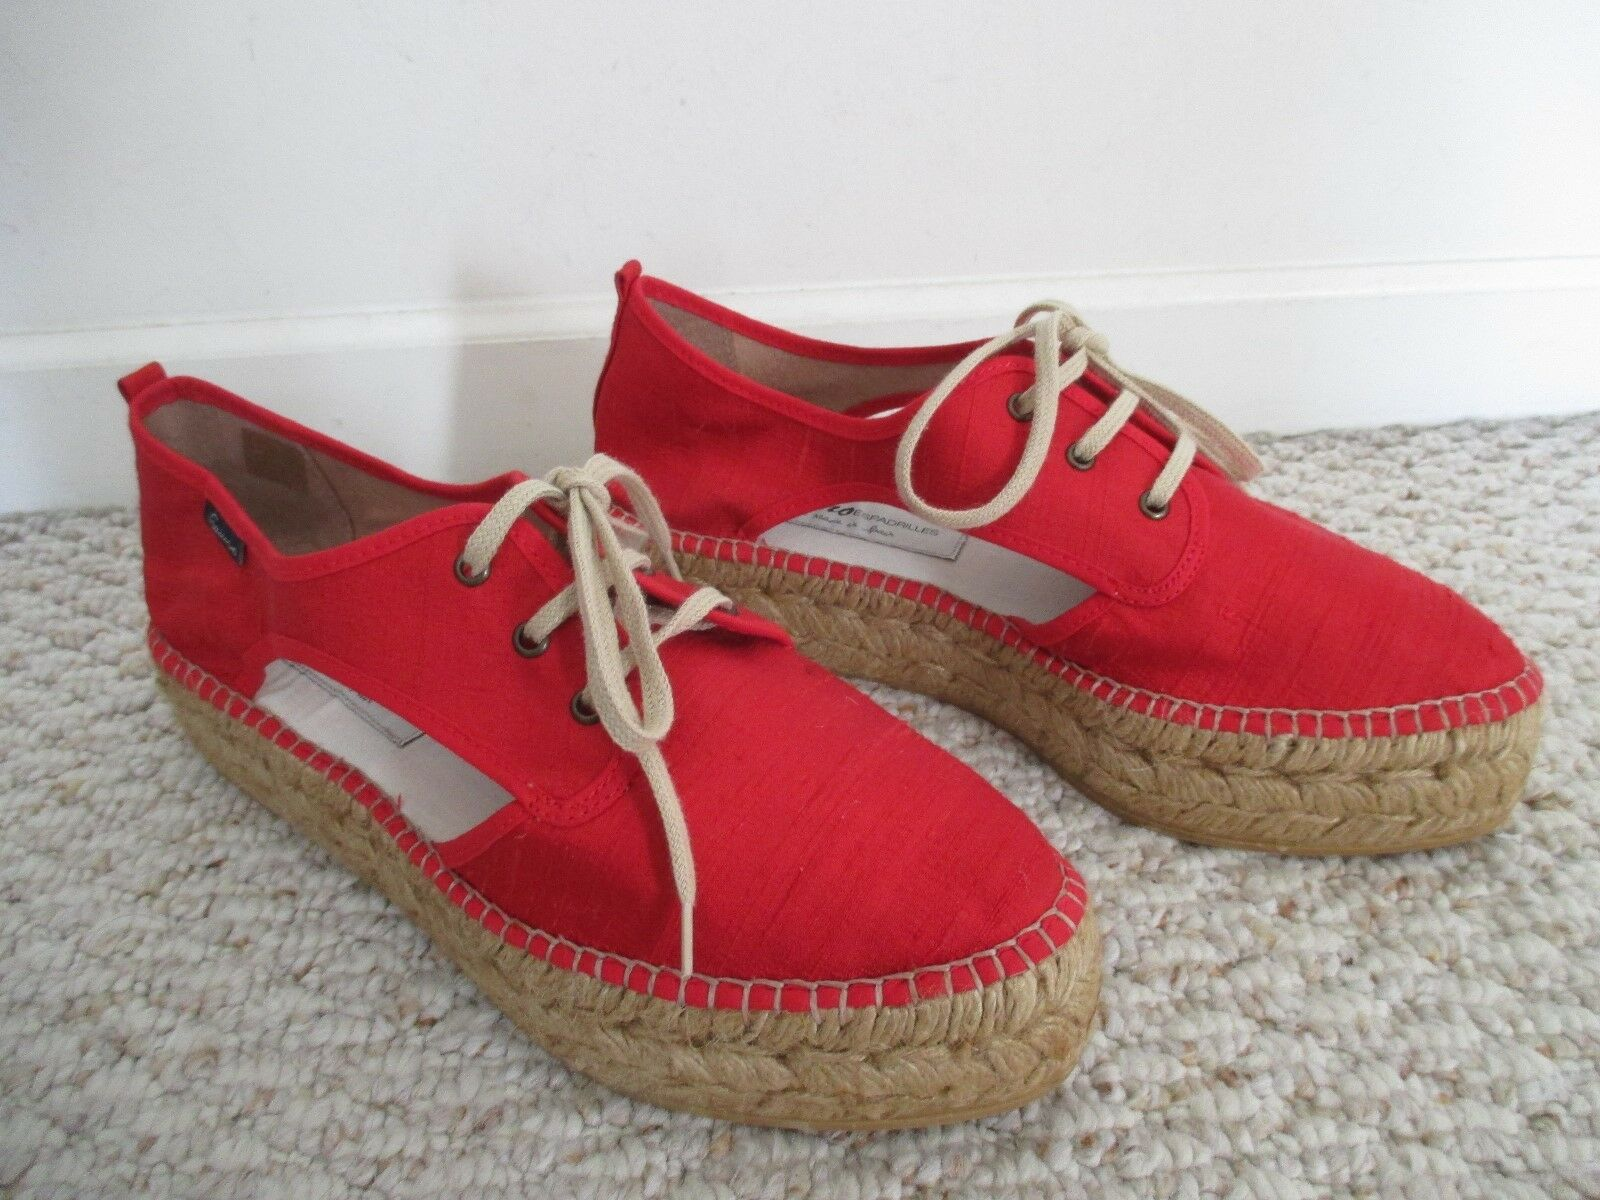 Gaimo Espadrille ROT Lace-Up Schuhes Größe 40 NEW Made Made Made in Spain e3a10b